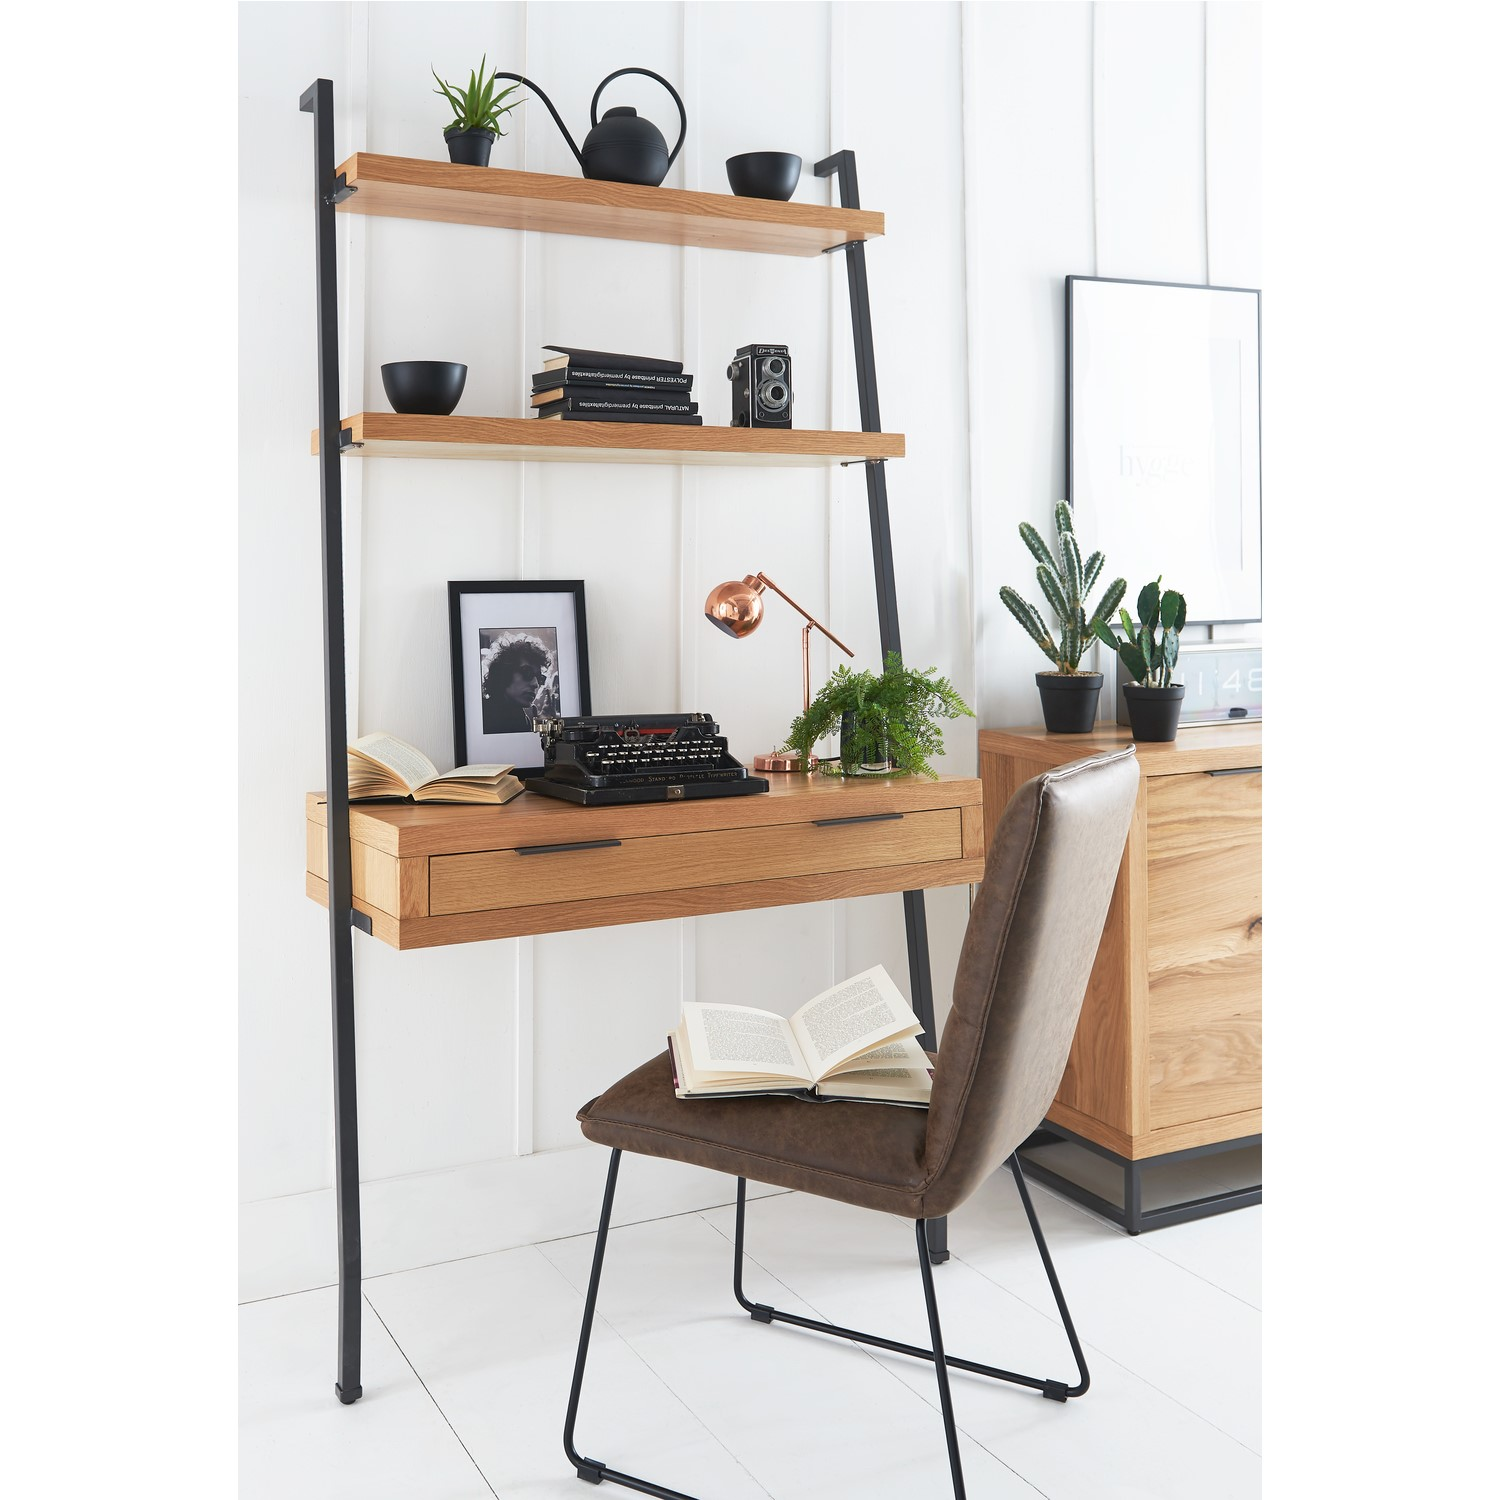 Photo of Industrial desk with black legs